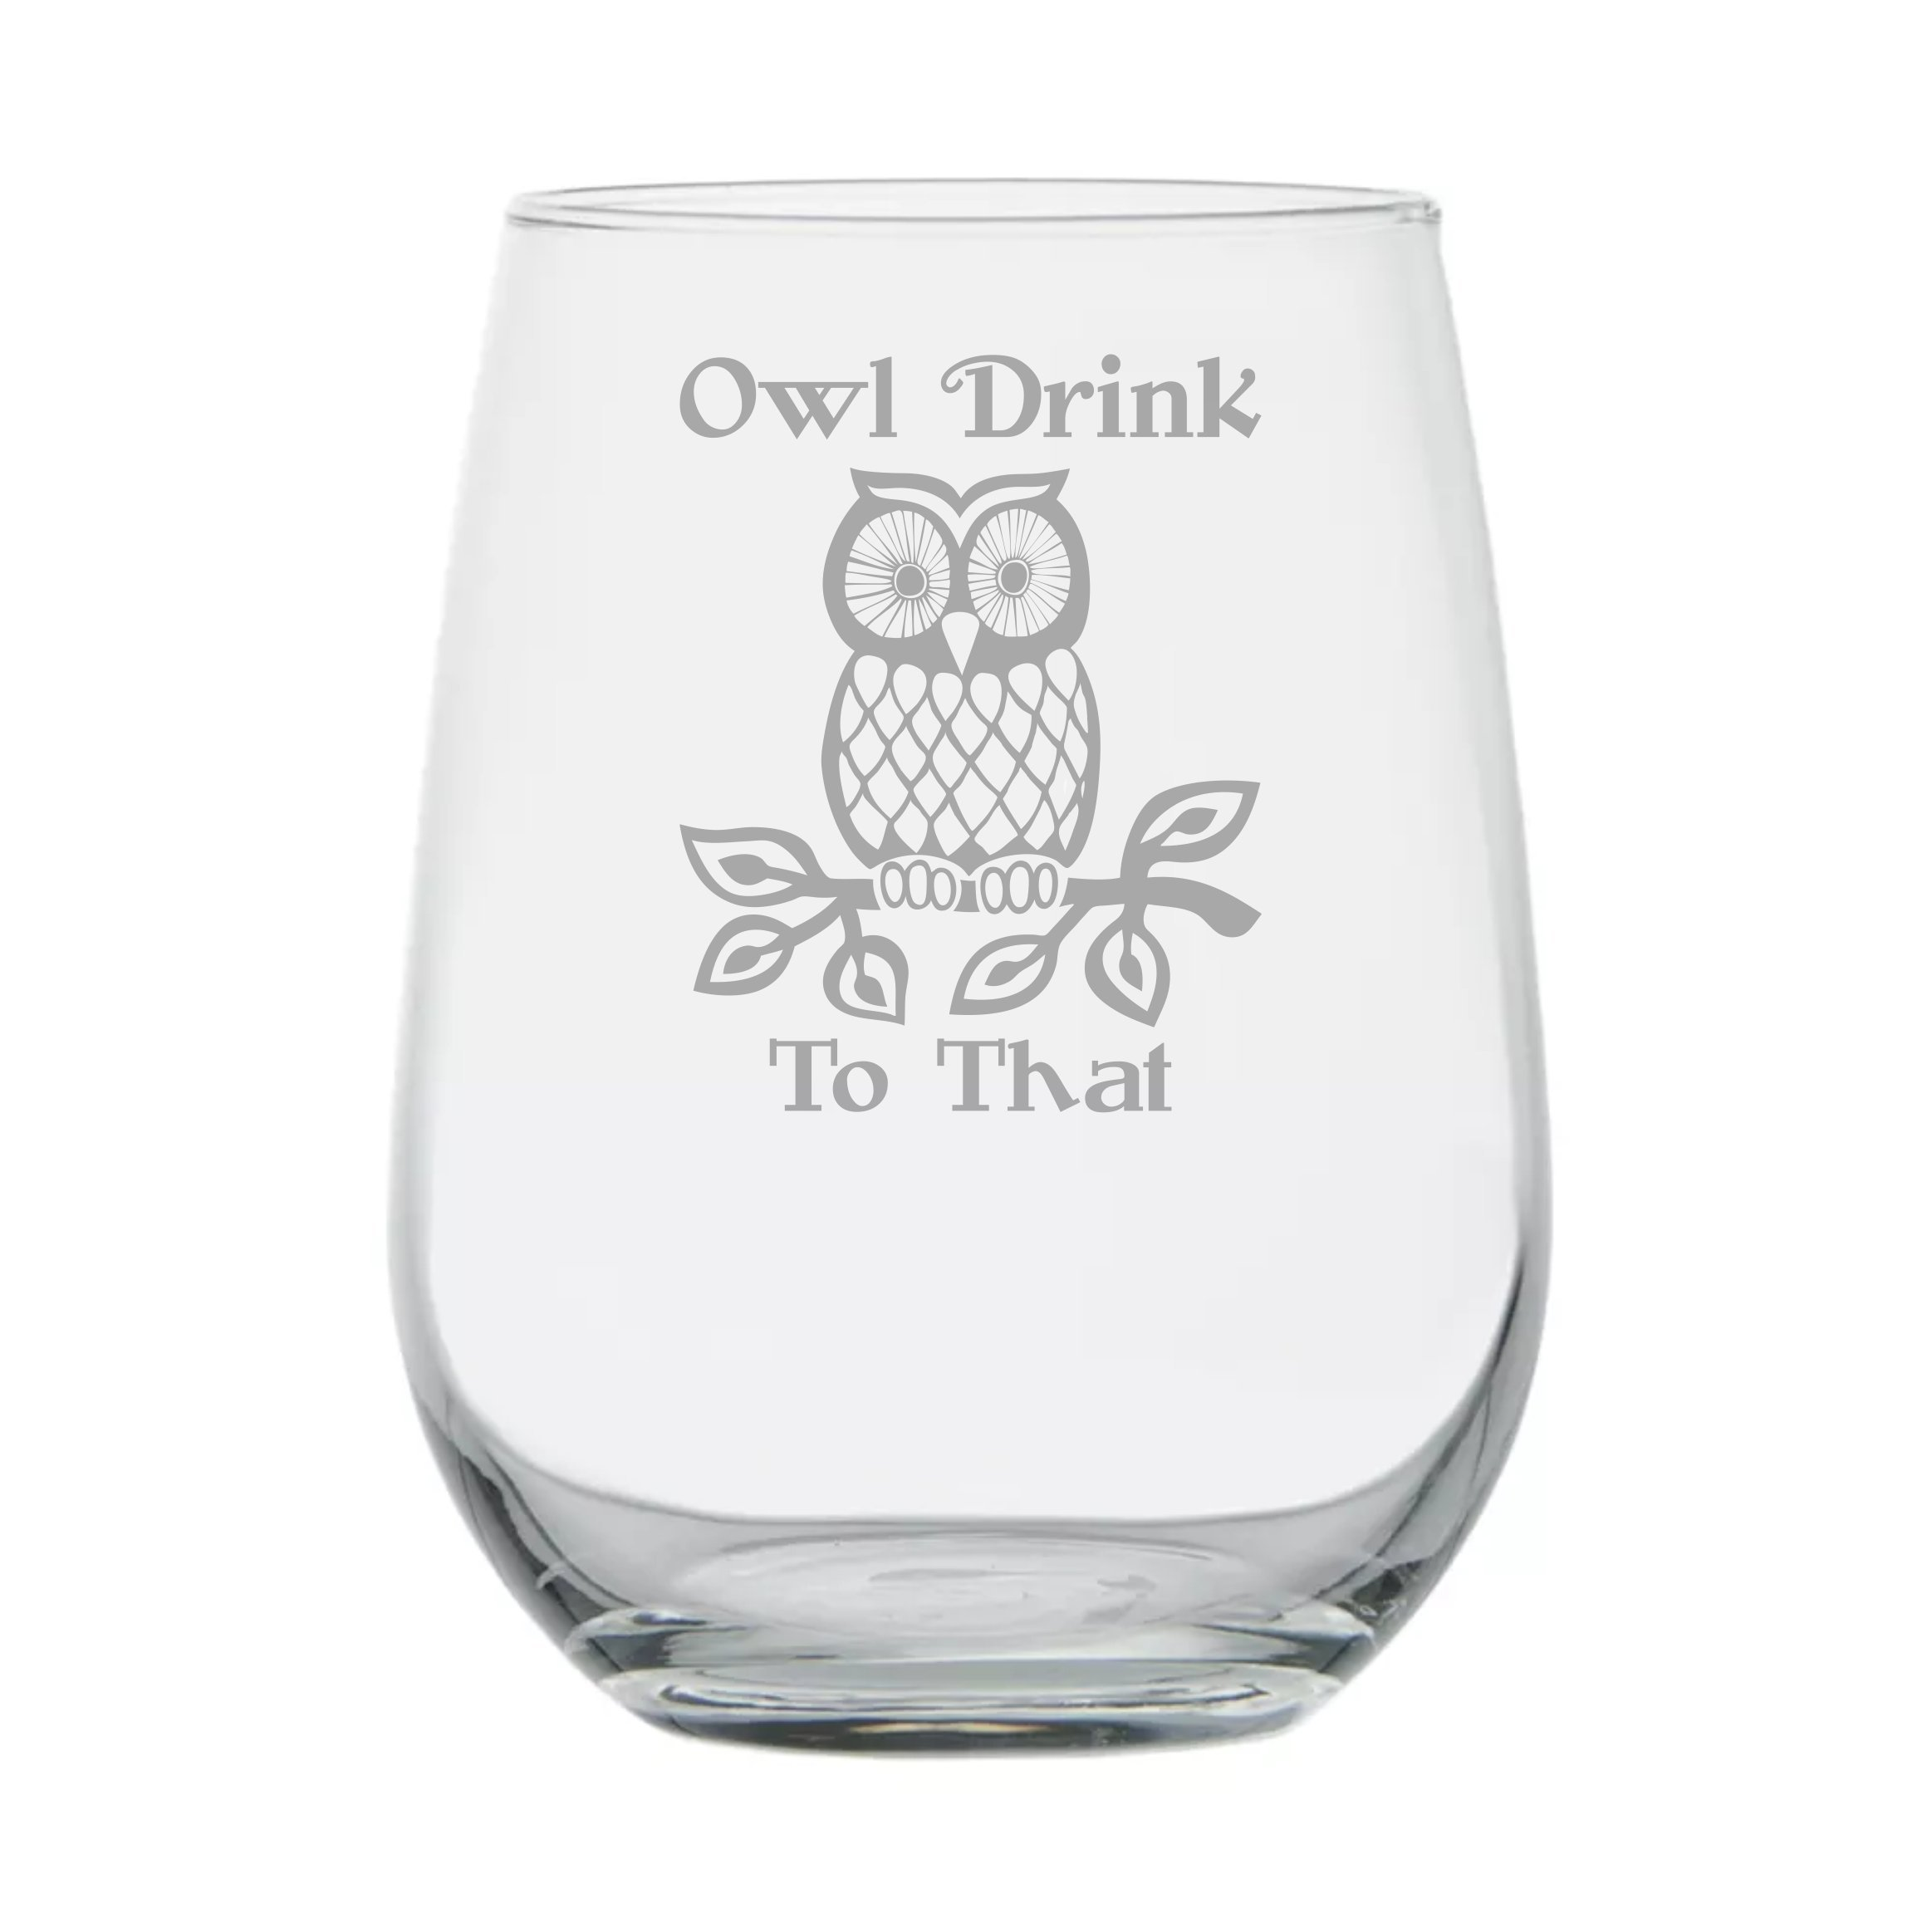 Owl Drink to That - 17 oz Funny Stemless Wine Glass - Owl Themed Birthday Gift - Owl Lover Gifts - Owl Housewarming Gifts - Christmas - Owl Kitchen Decor and Decorations